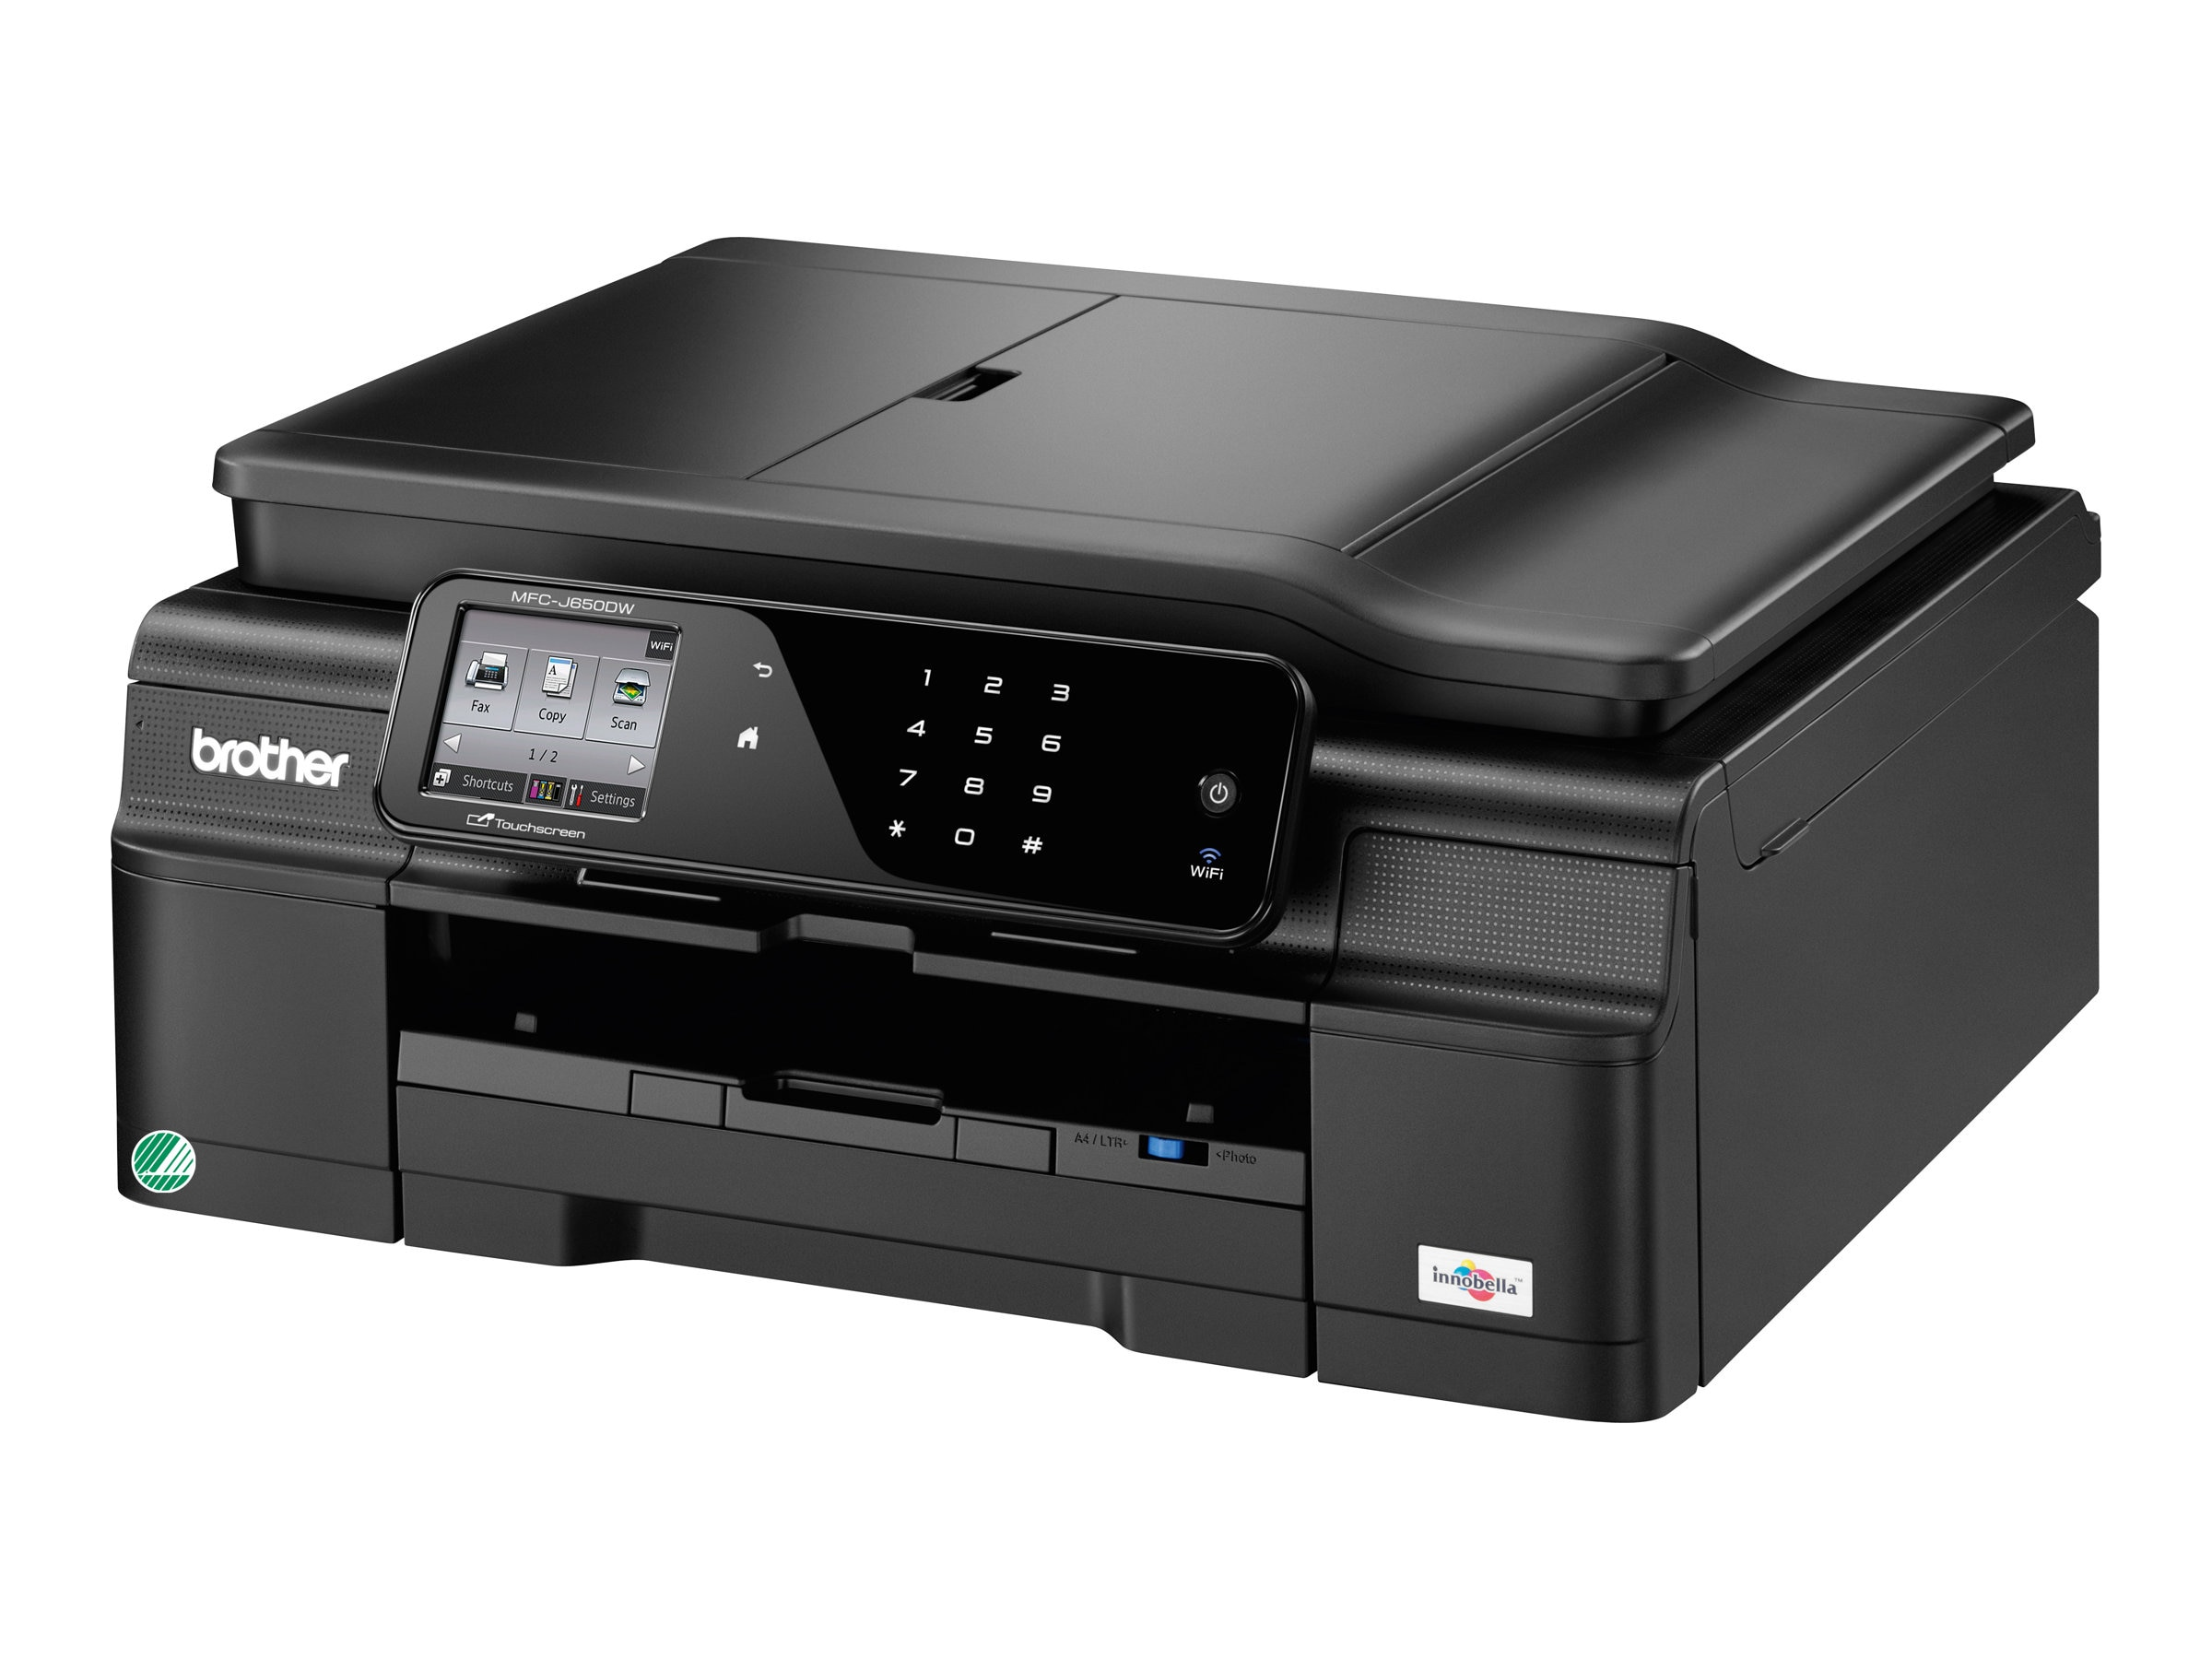 Brother MFC-J650DW Image 1